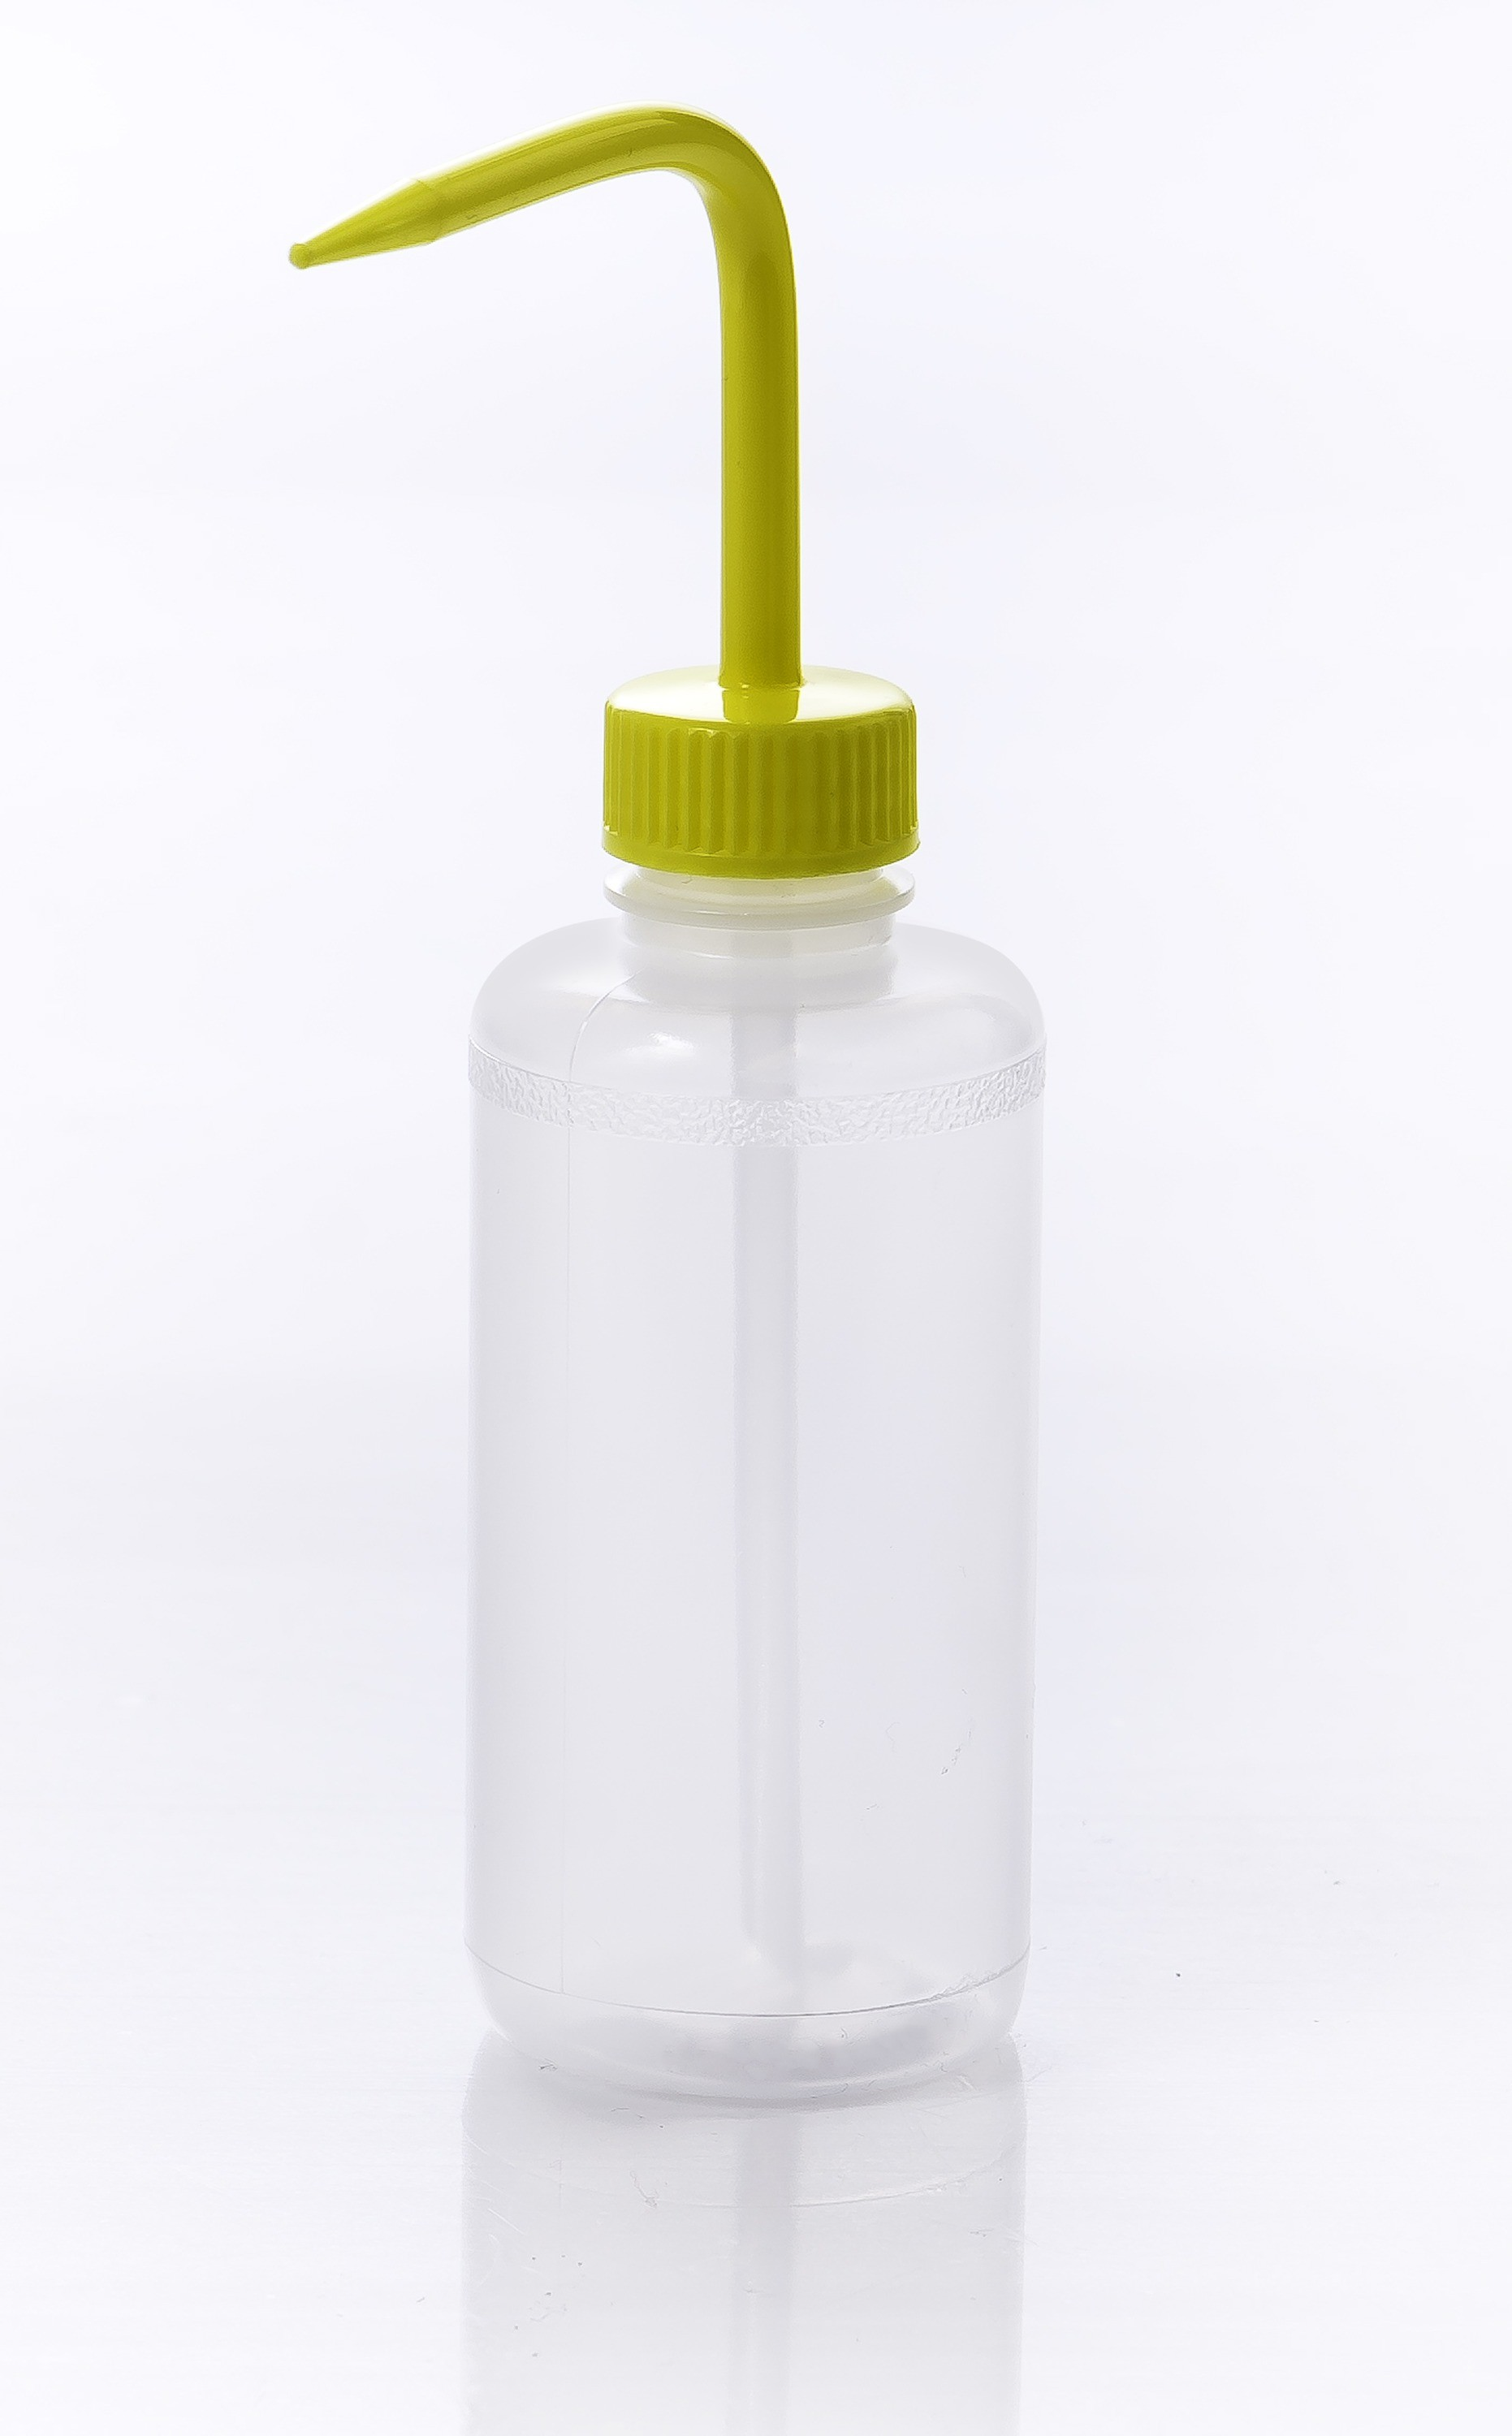 SP Bel-Art Narrow-Mouth 250ml (8oz) Polyethylene Wash Bottles; Yellow Polypropylene Cap, 28mm Closure (Pack of 6)